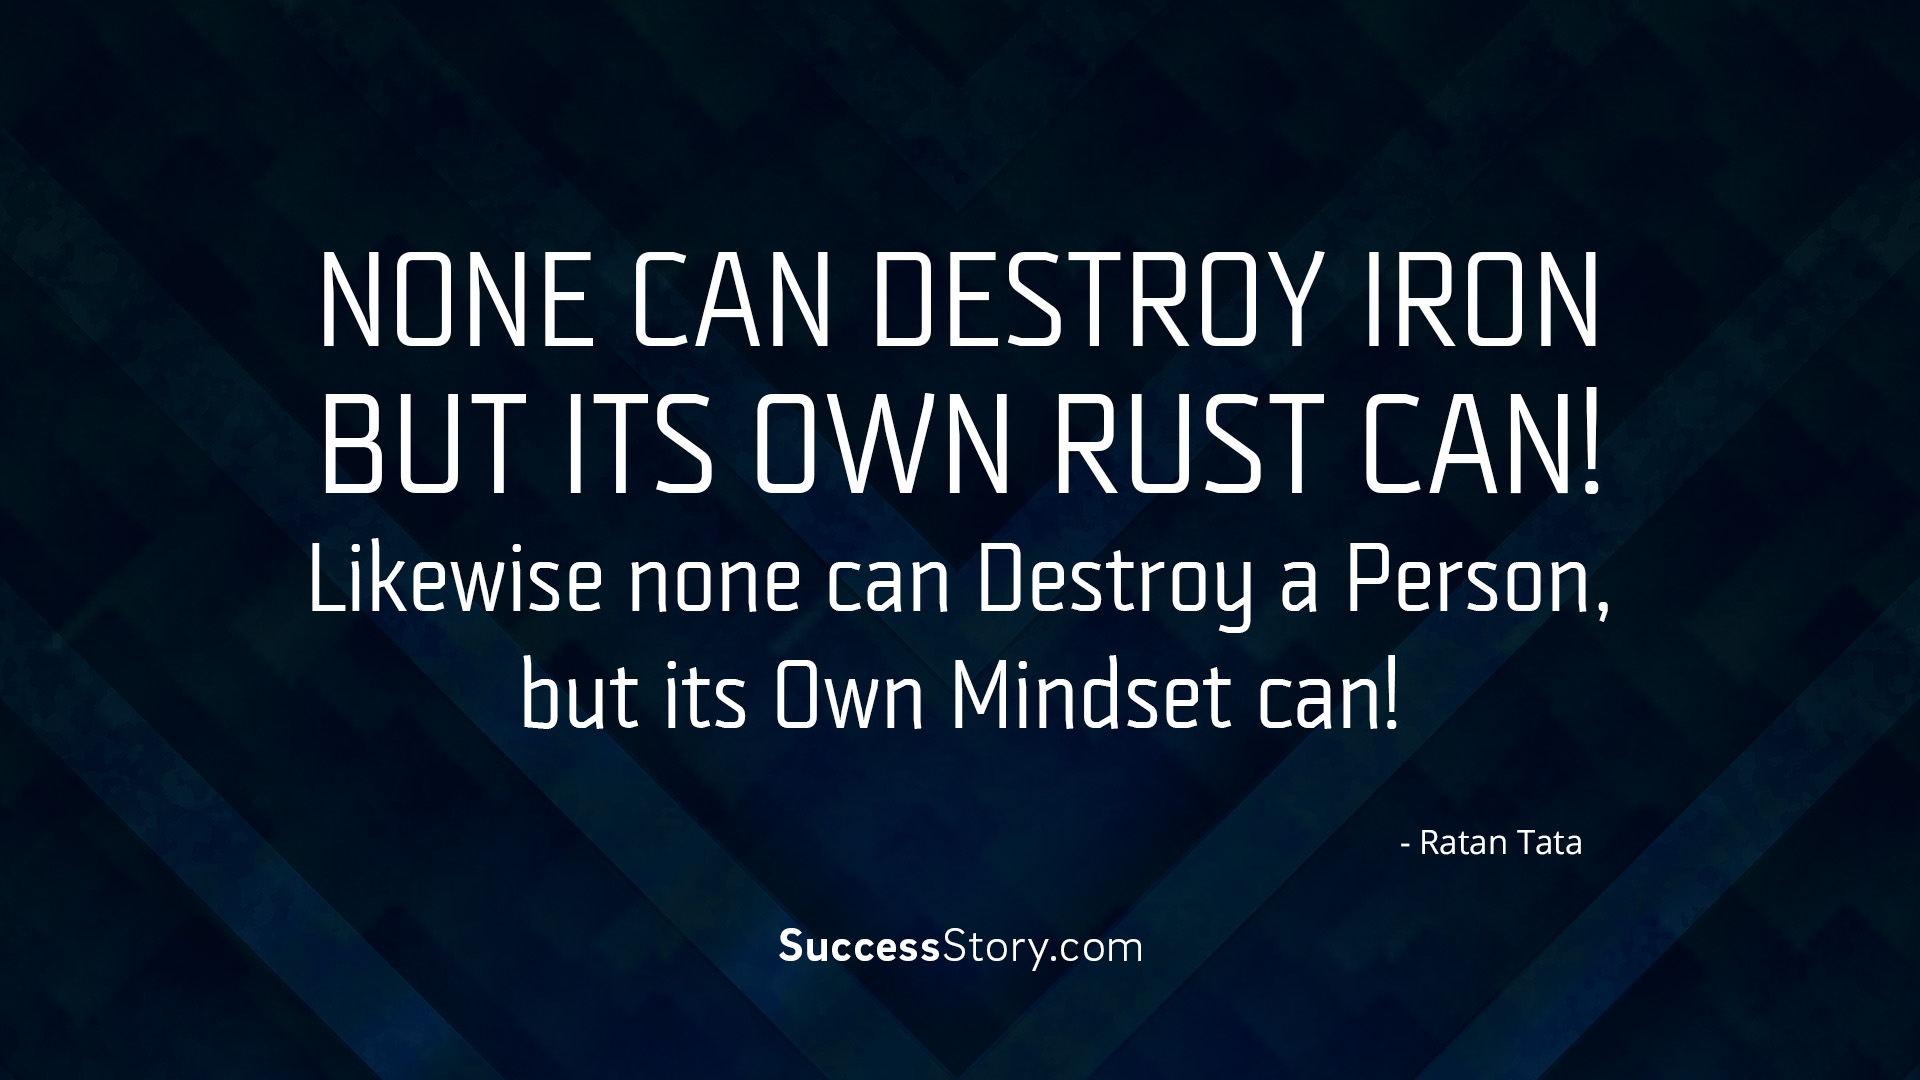 None can destroy